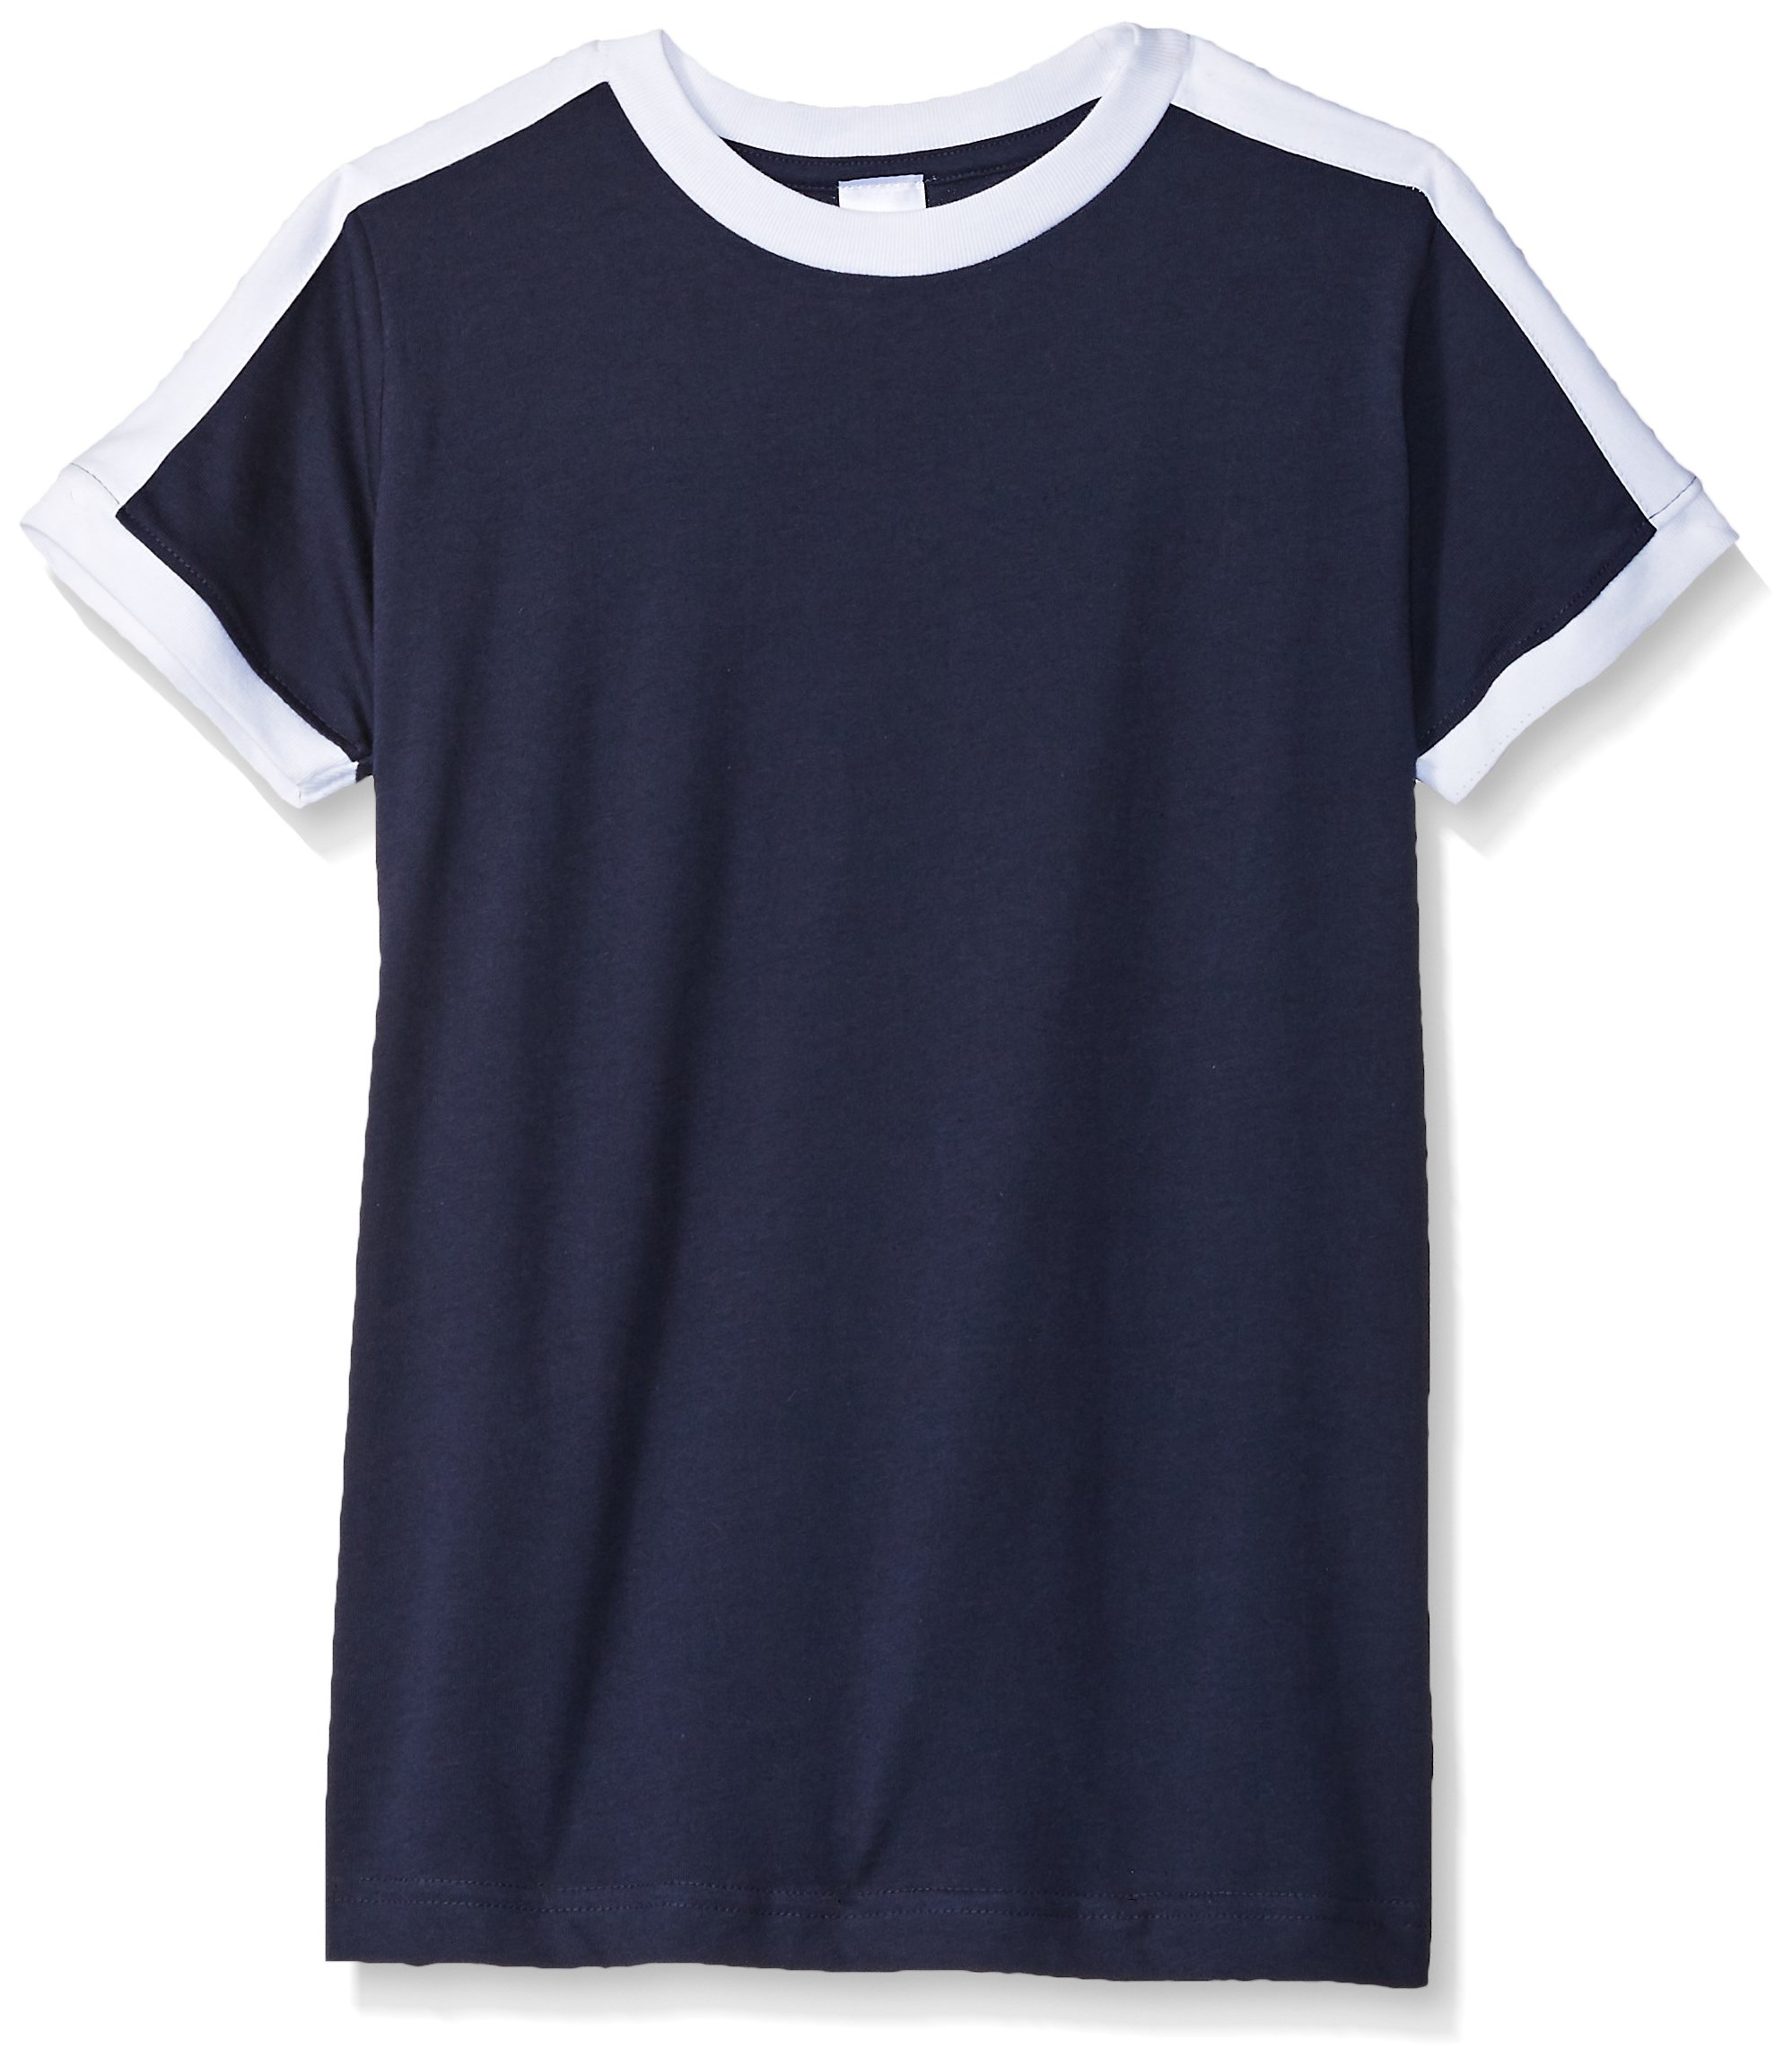 Clementine Big Boys' Youth Soccer Ringer Fine Jersey Tee, Navy/White, XL